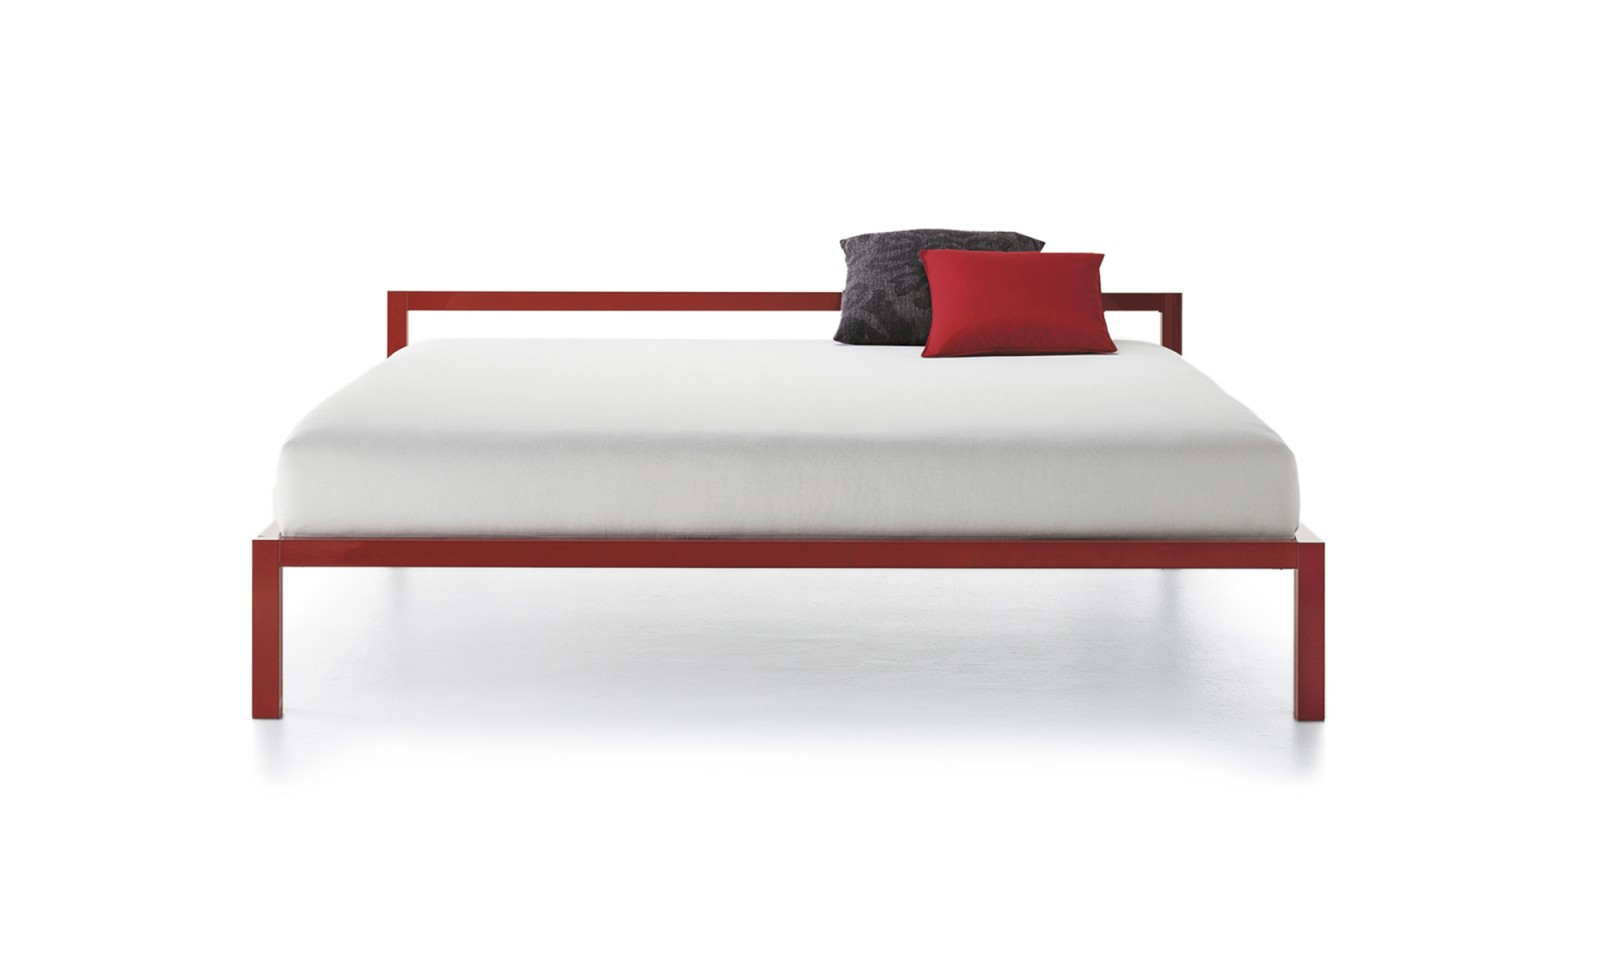 Aluminium Bed Without Head Panel, Lacquered 170cm, Gloss Red